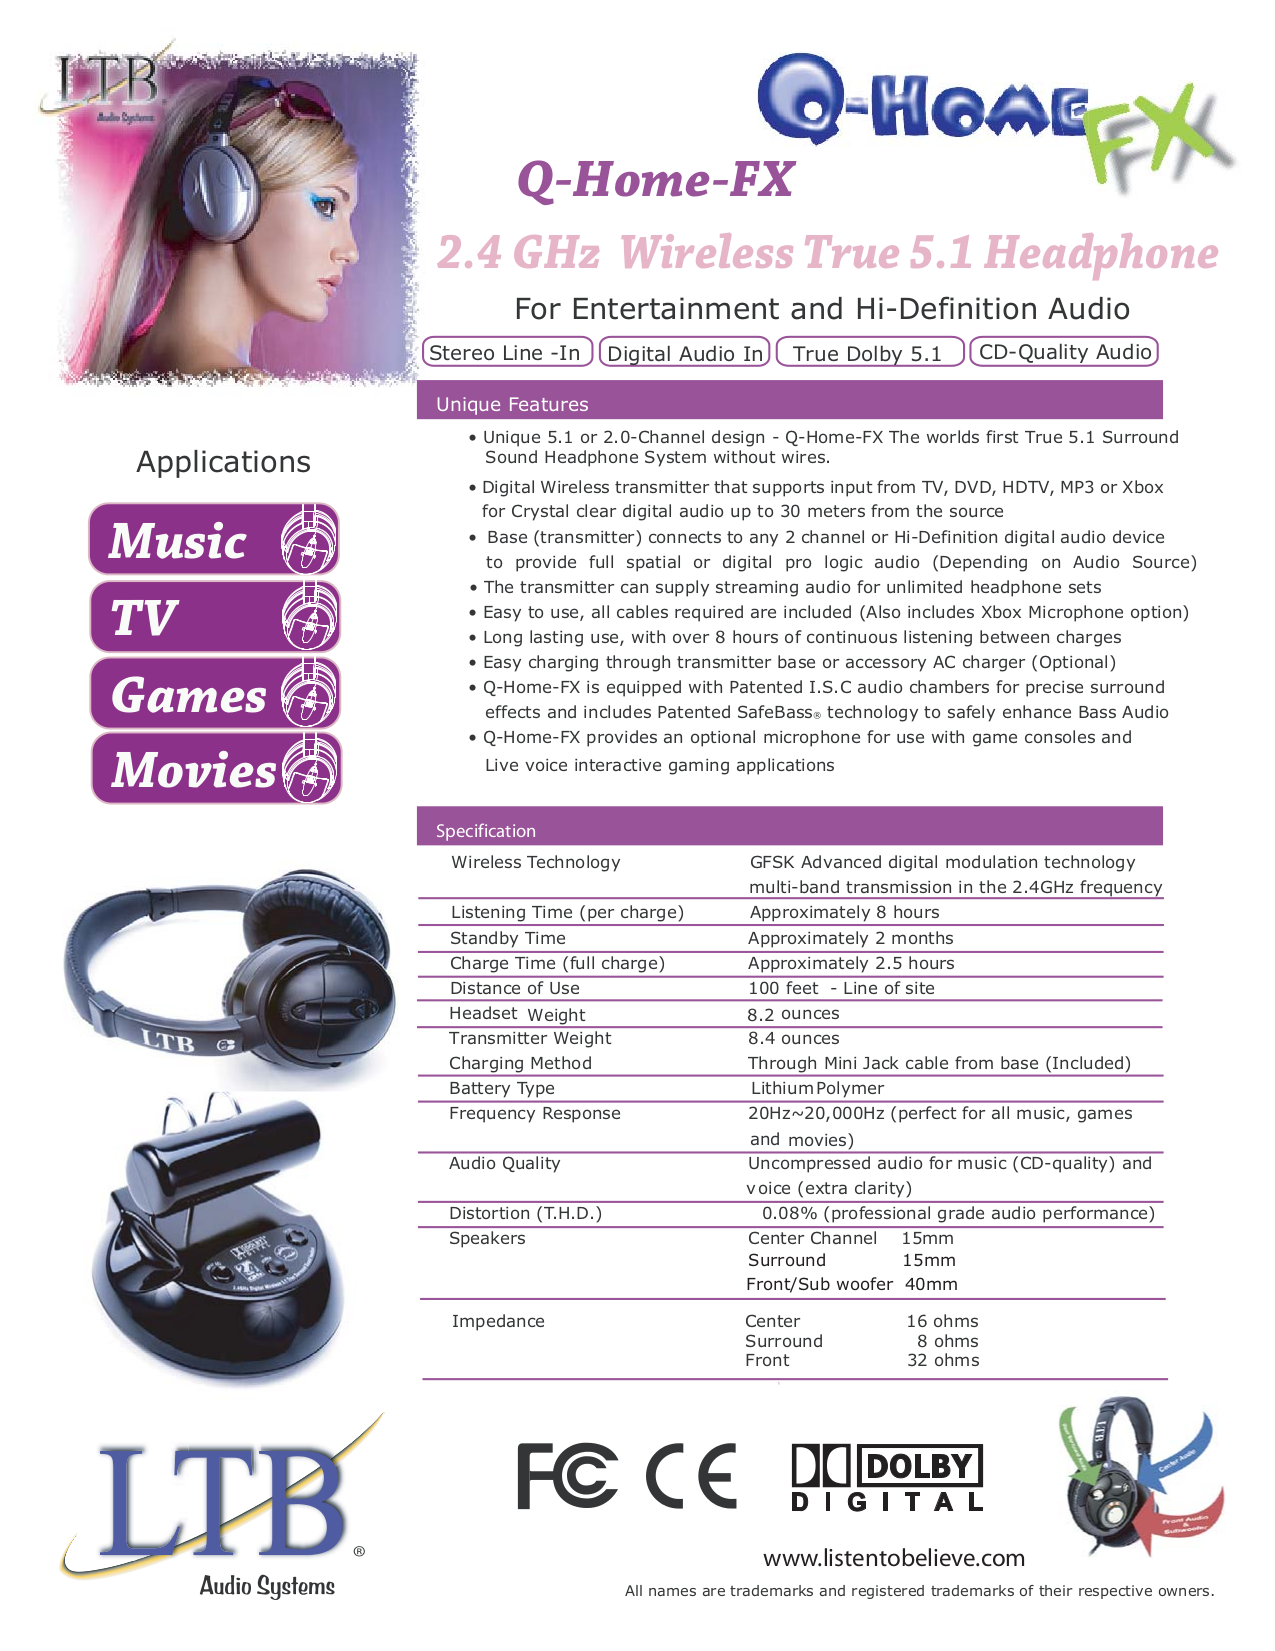 pdf for LTB Headphone Q-Home-FX manual